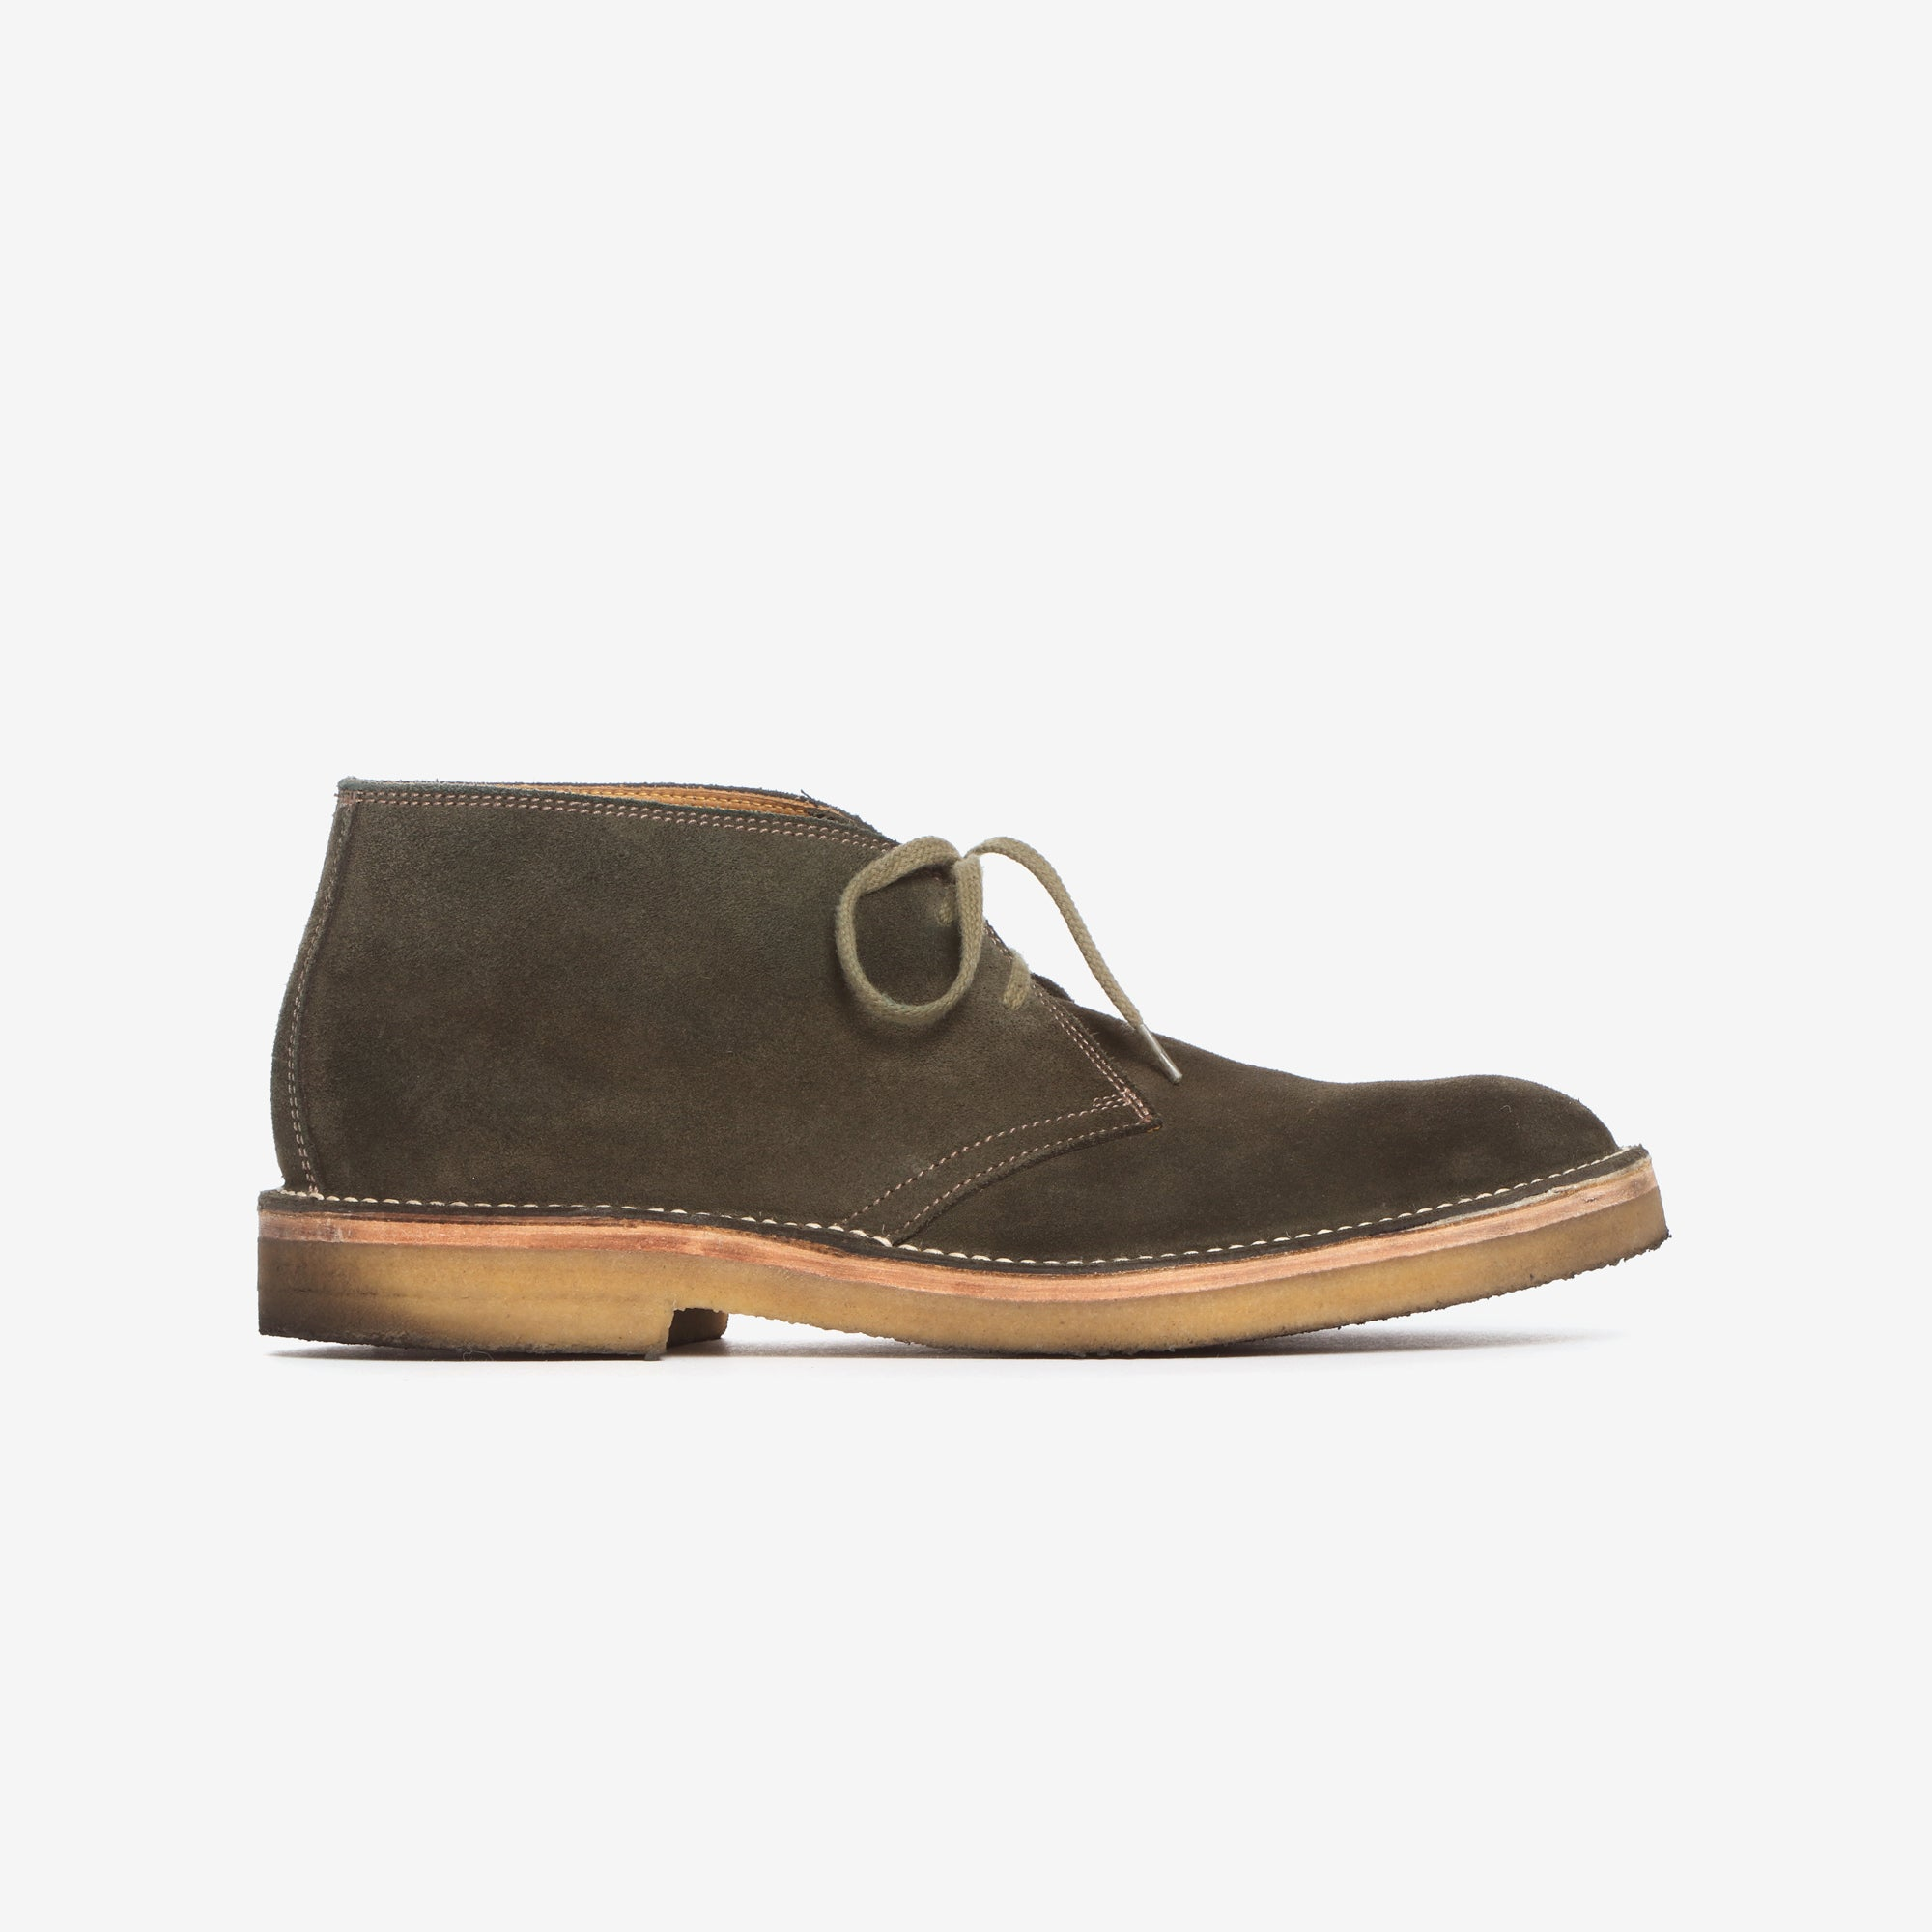 Japanese Suede Military Desert Boots